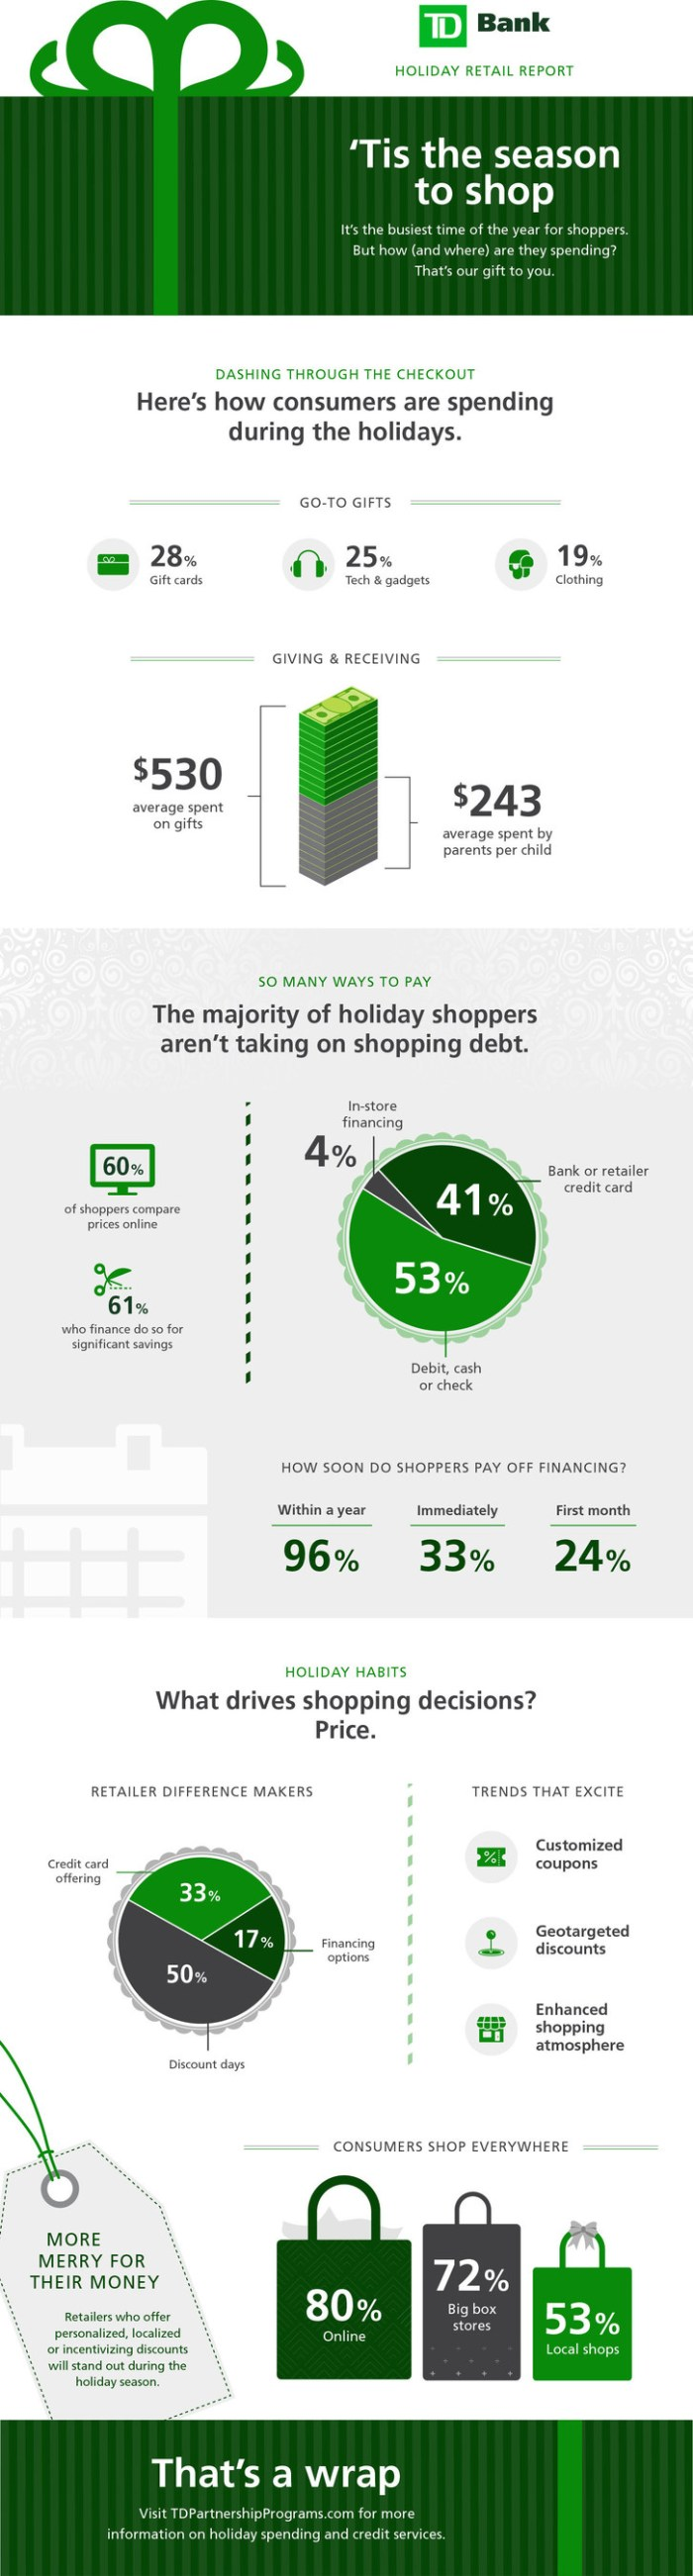 TD Bank Holiday Shopping Infographic